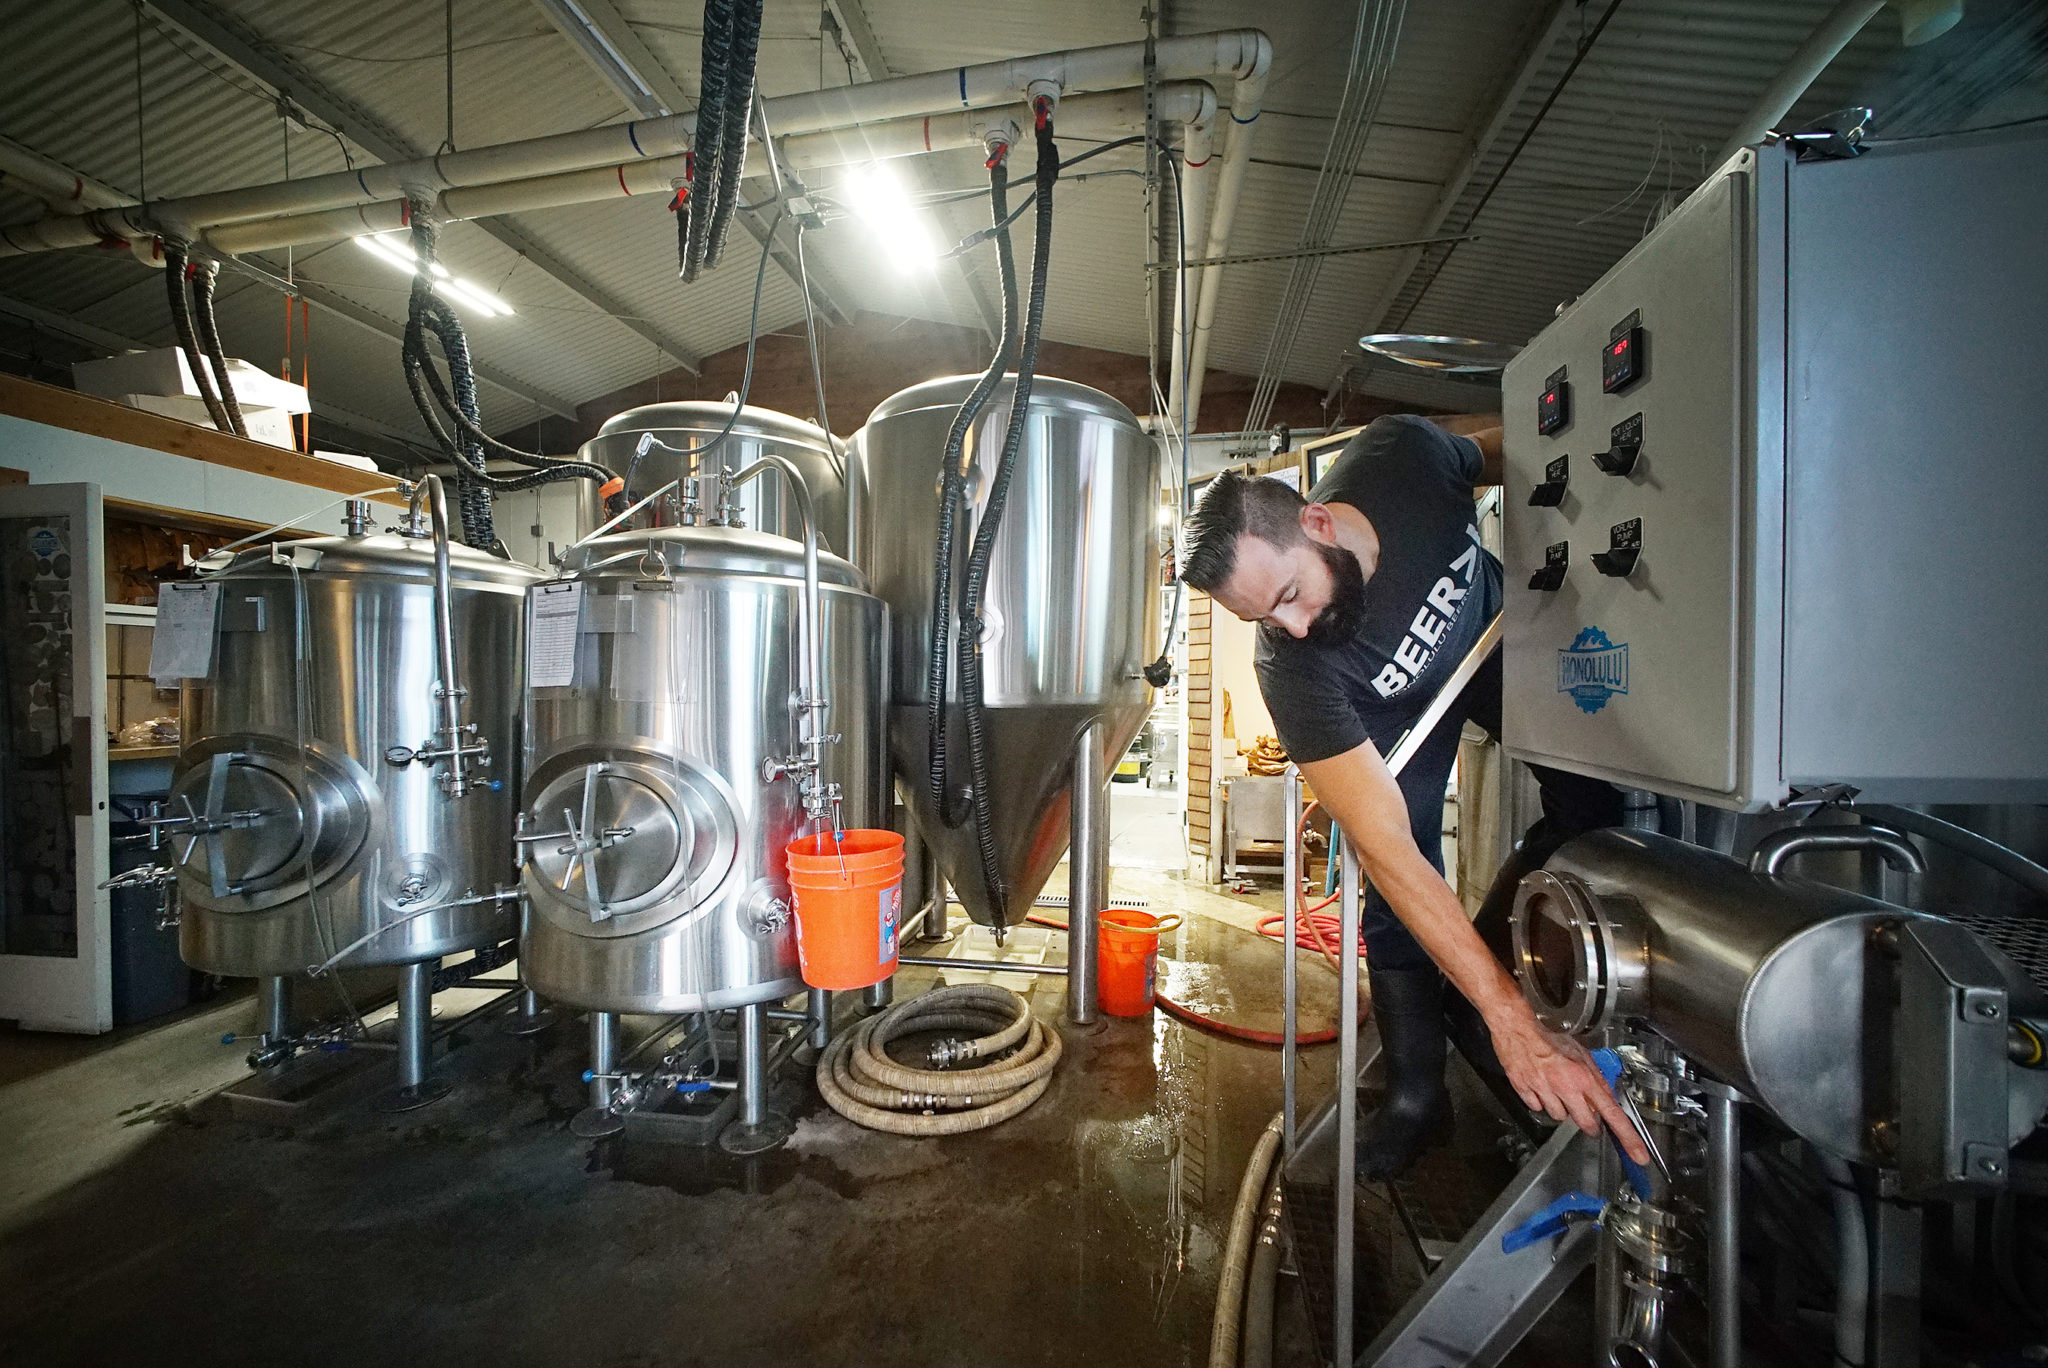 <p>Caldwell makes adjustments to the wort kettle controls before hops are added to the wort.</p>